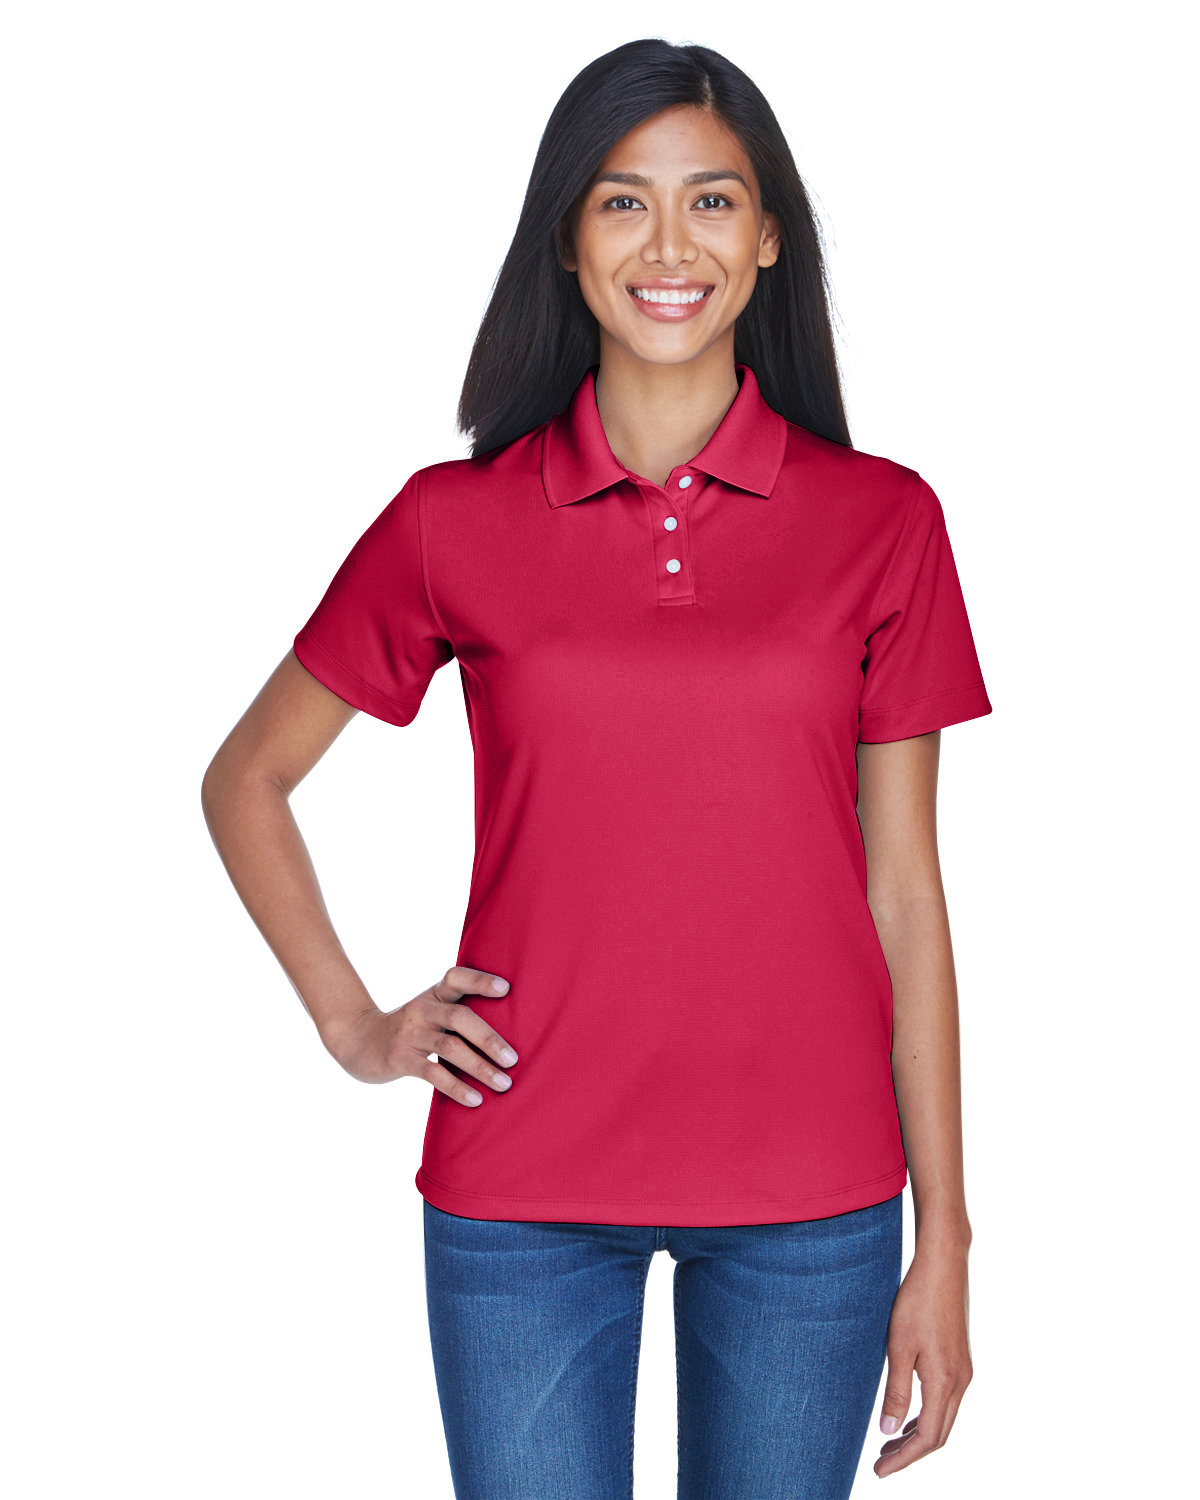 UltraClub Ladies' Cool & Dry Stain-Release Performance Polo CARDINAL